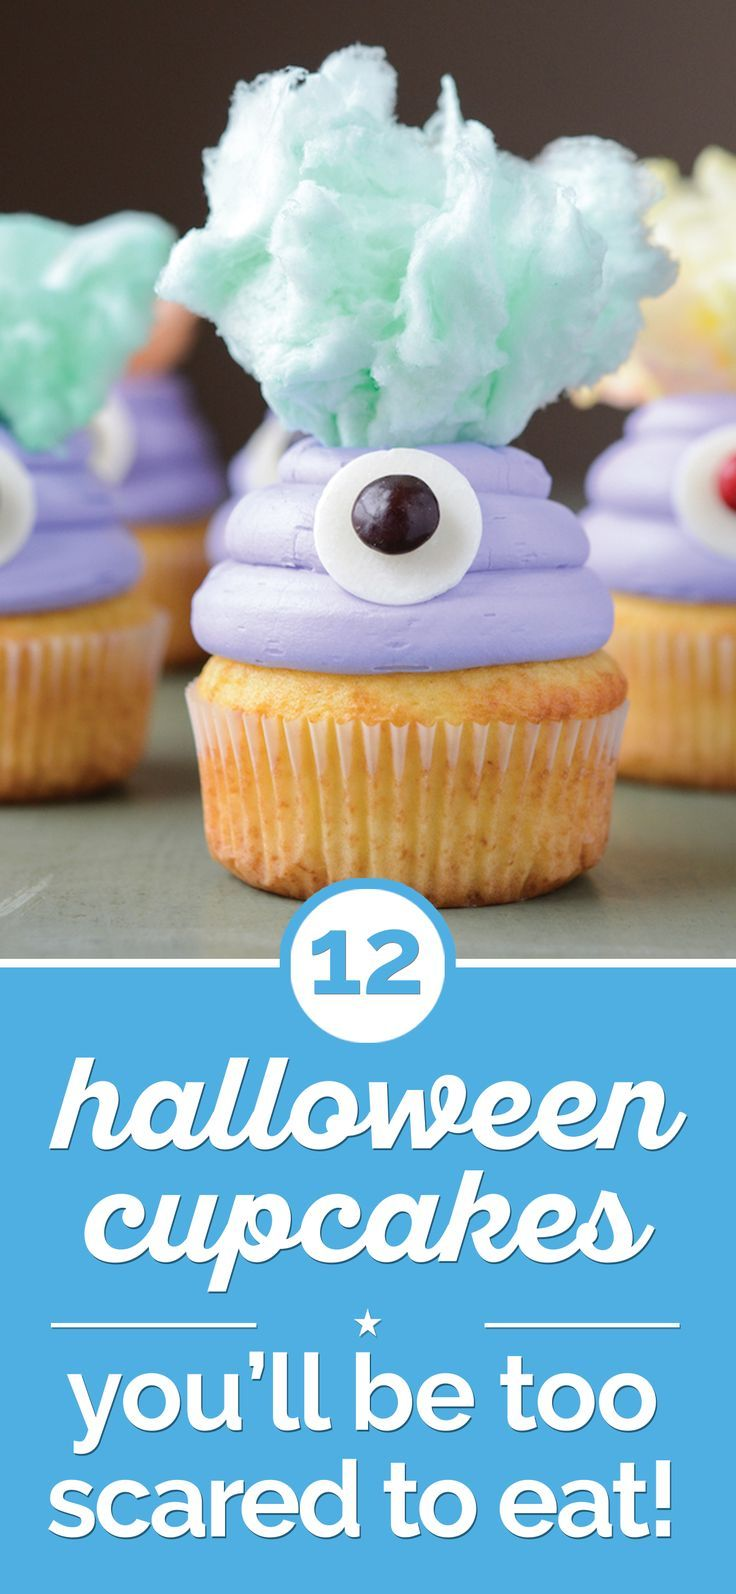 12 Halloween Cupcakes You'll Be Too Scared to Eat!